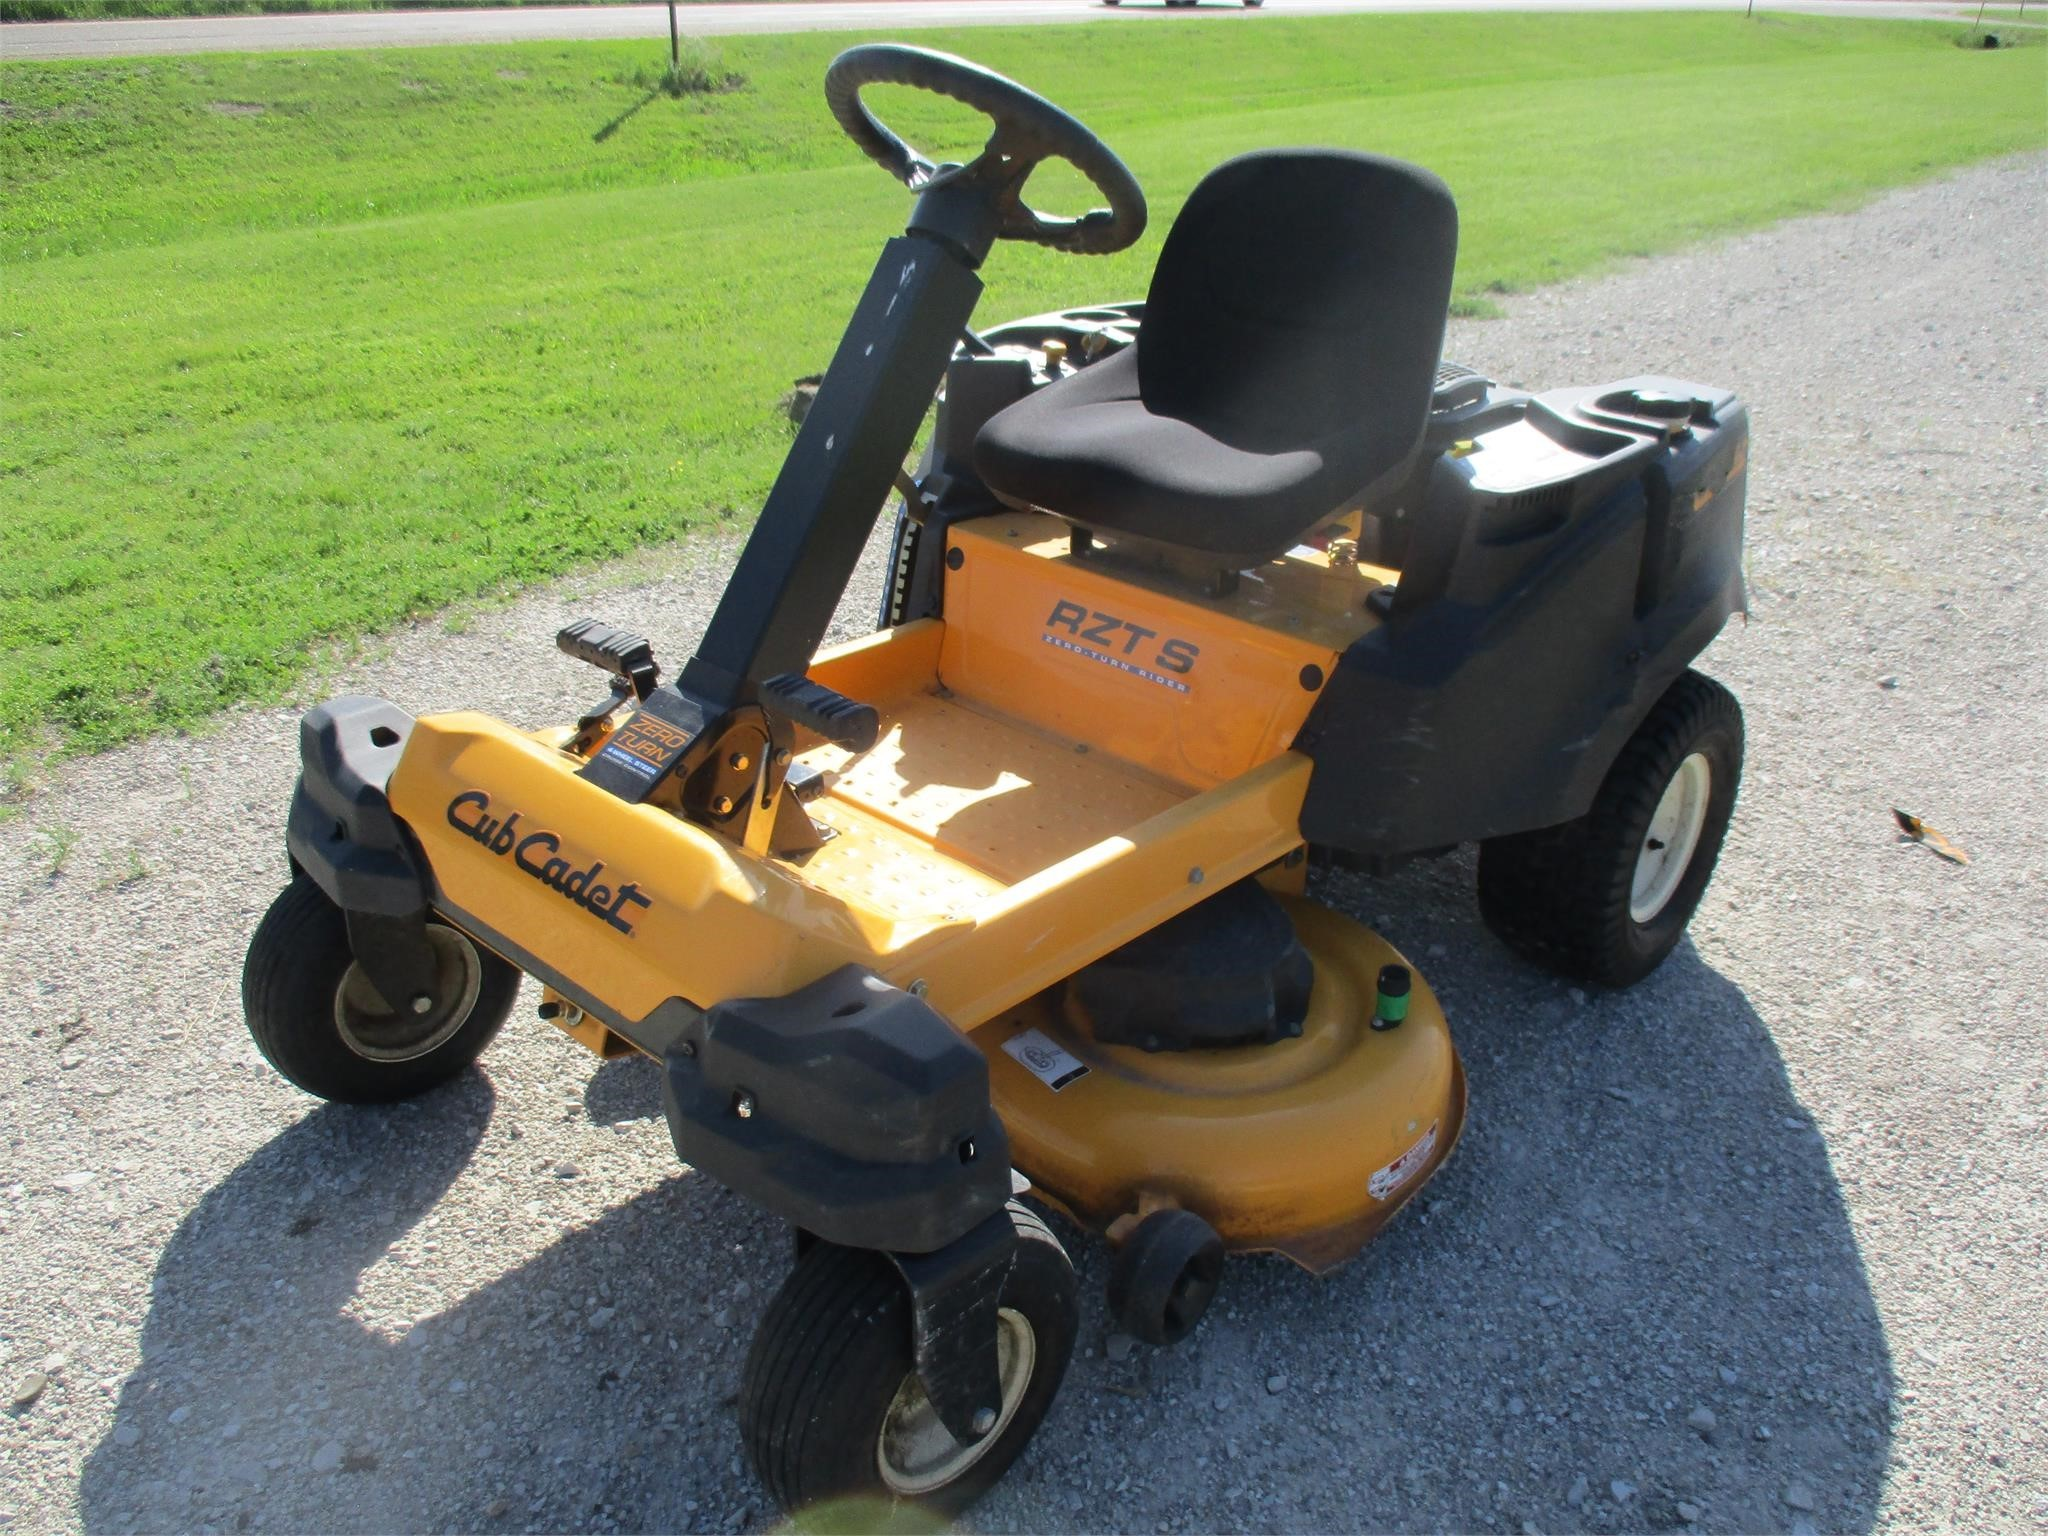 2013 Cub Cadet RZTS42 Lawn and Garden